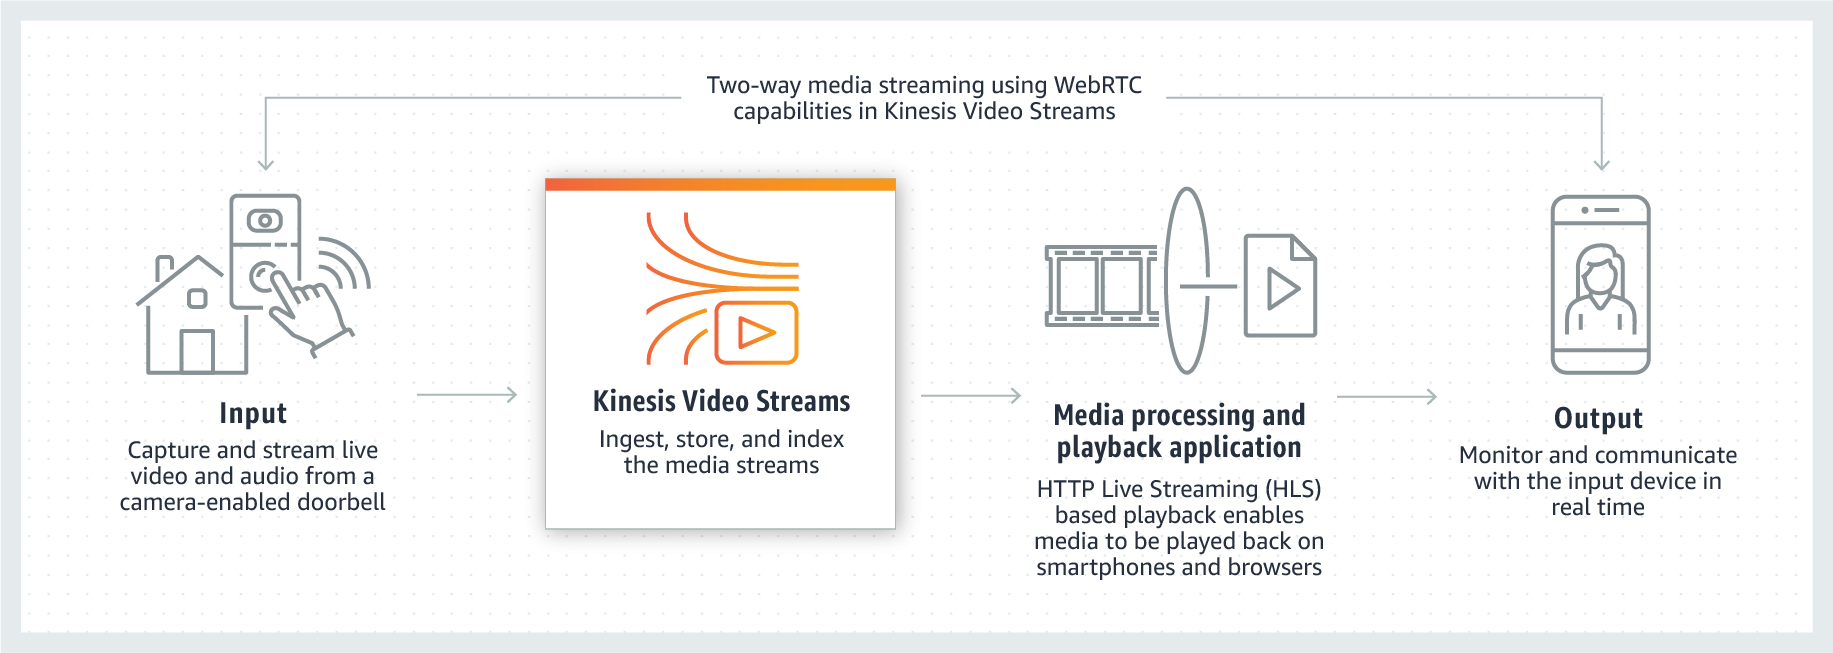 Caos d'uso smart home Amazon Kinesis Video Streams